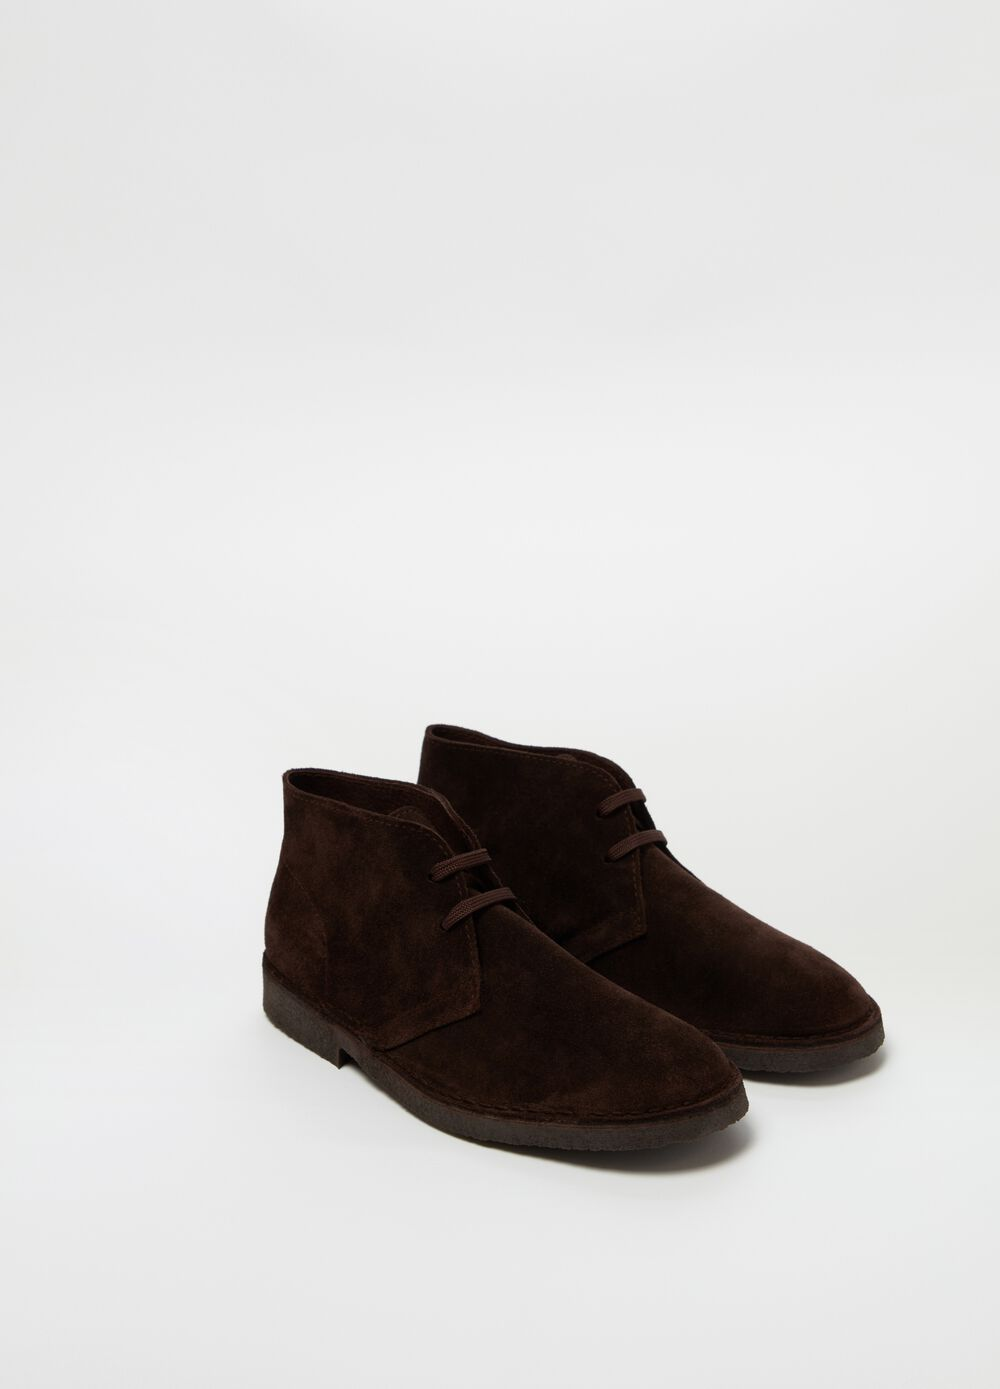 Rumford genuine leather desert boot